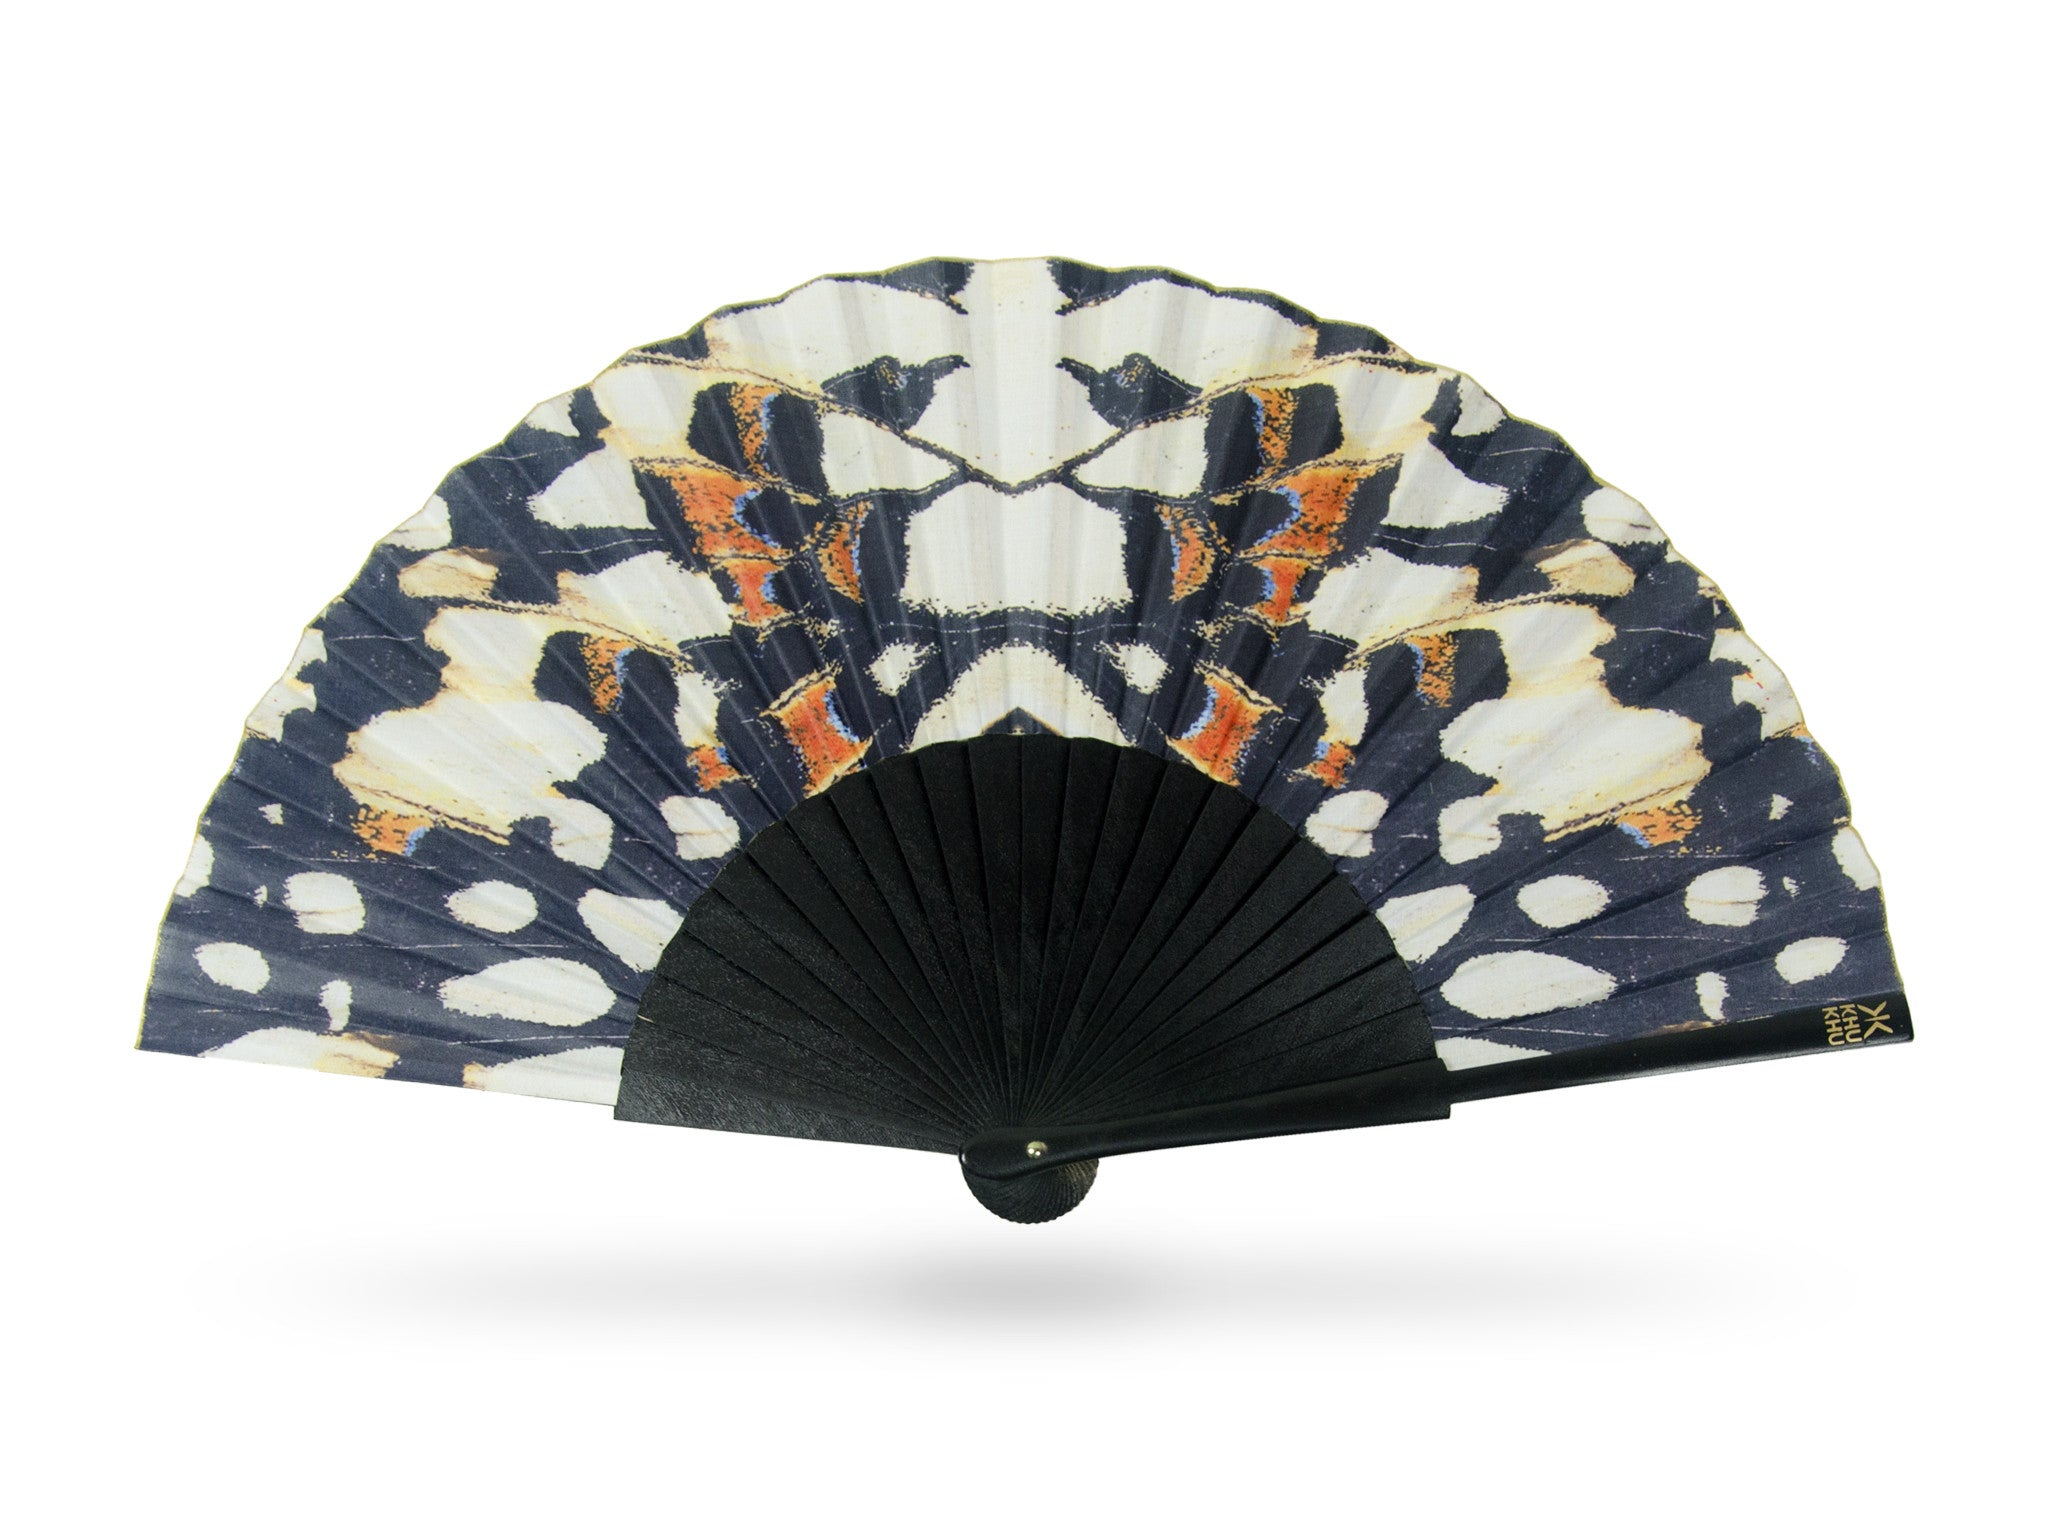 Khu Khu Black Nymph Beautiful Symmetrical Butterfly Print Hand-Fan with black sticks in black, off white and hints of blue and burnt orange.